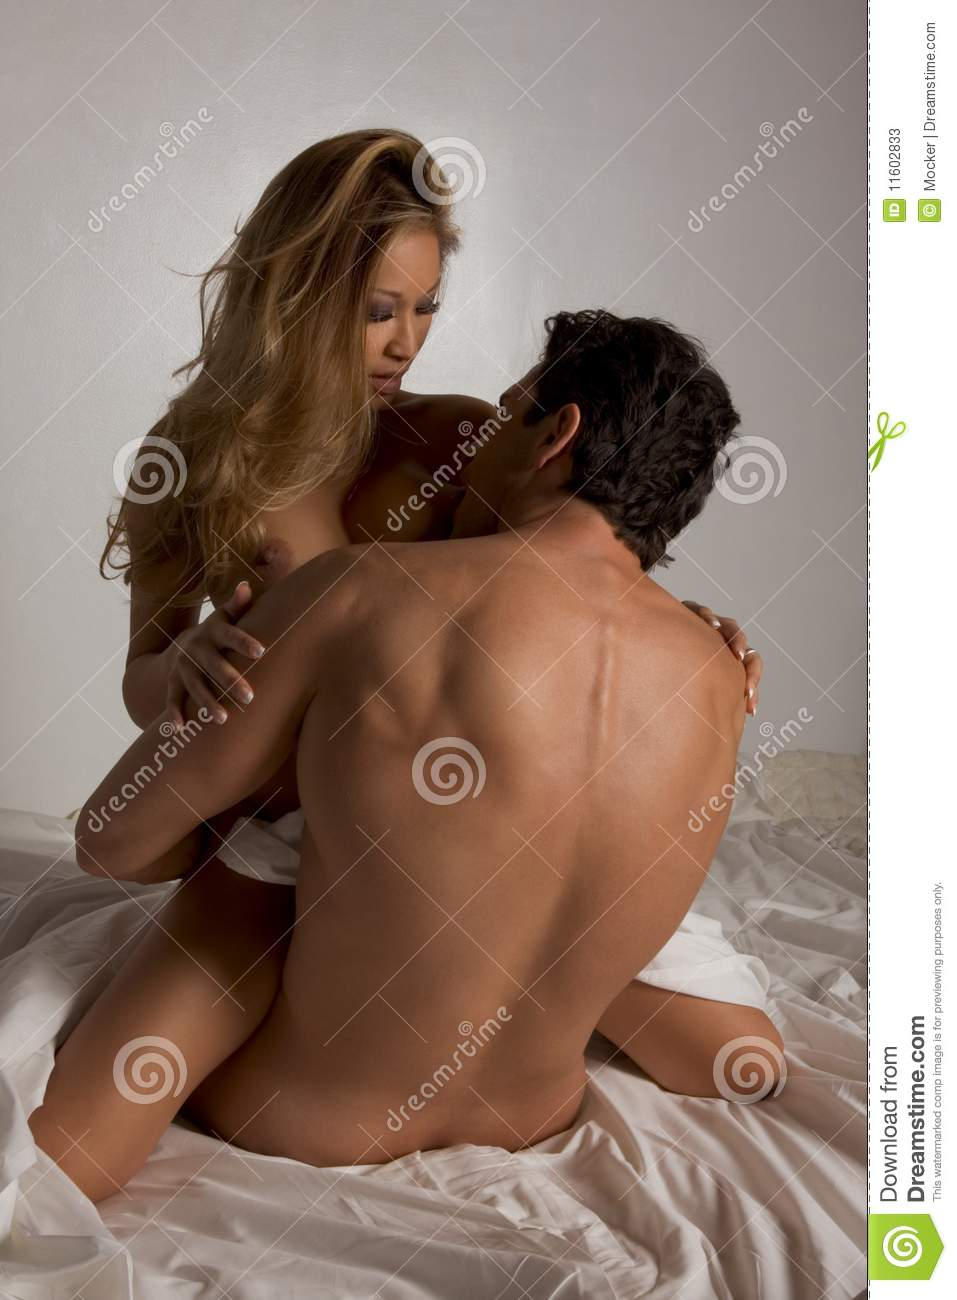 Naked men and women having sex